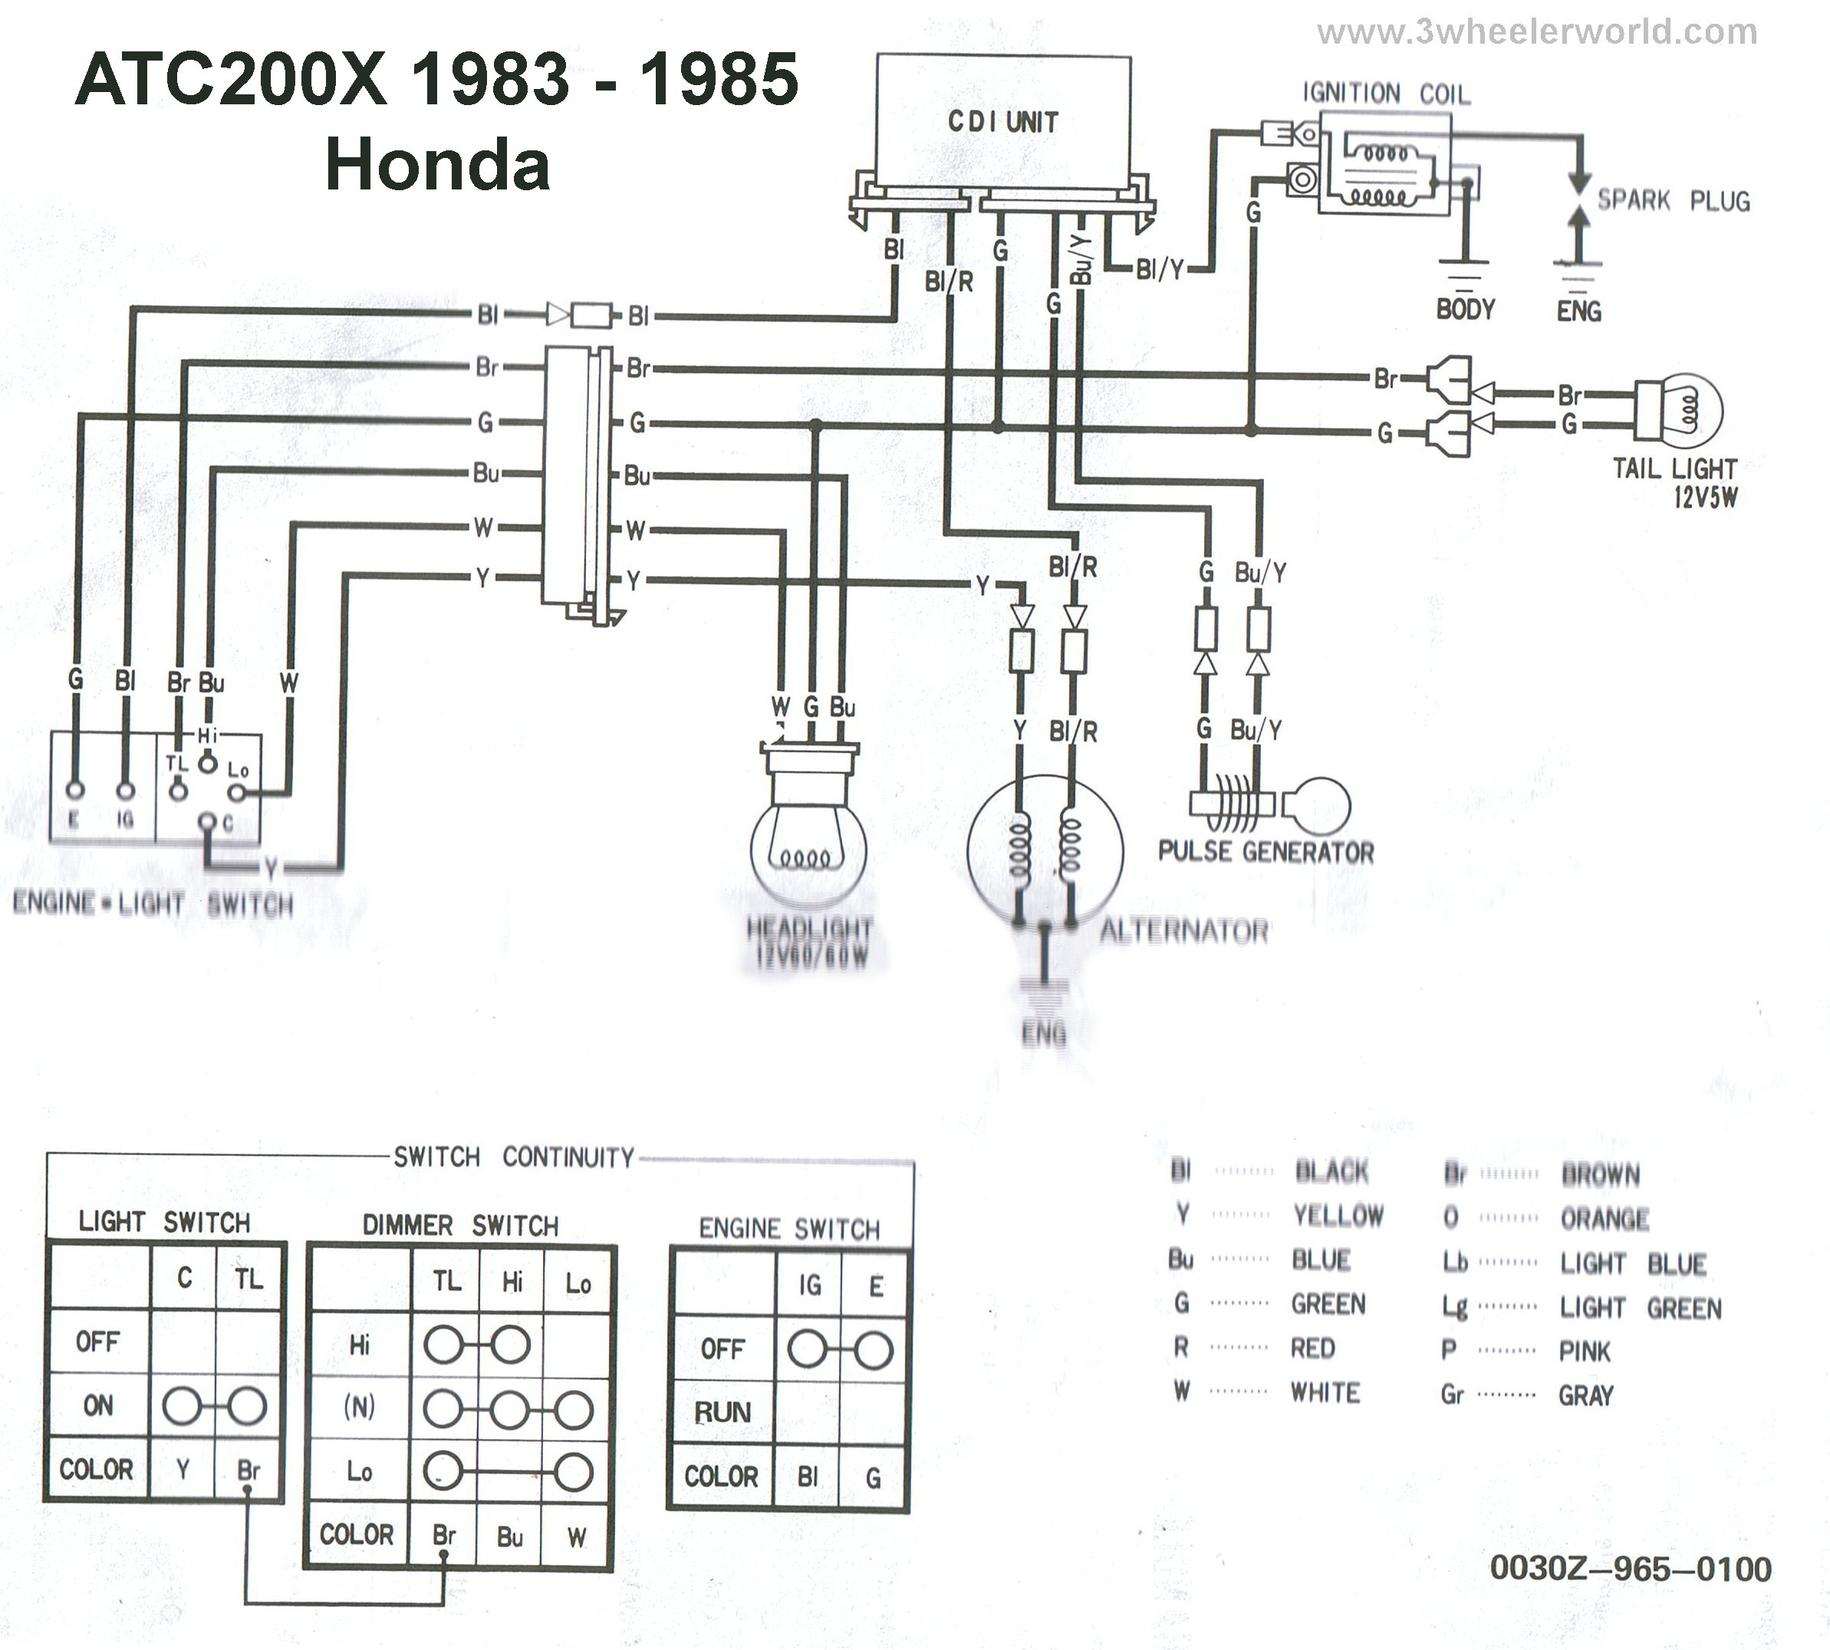 3wheeler world - atc200x wiring diagram motorcycle 85 kawasaki 550 ltd wiring diagram electrical of kawasaki klt 200